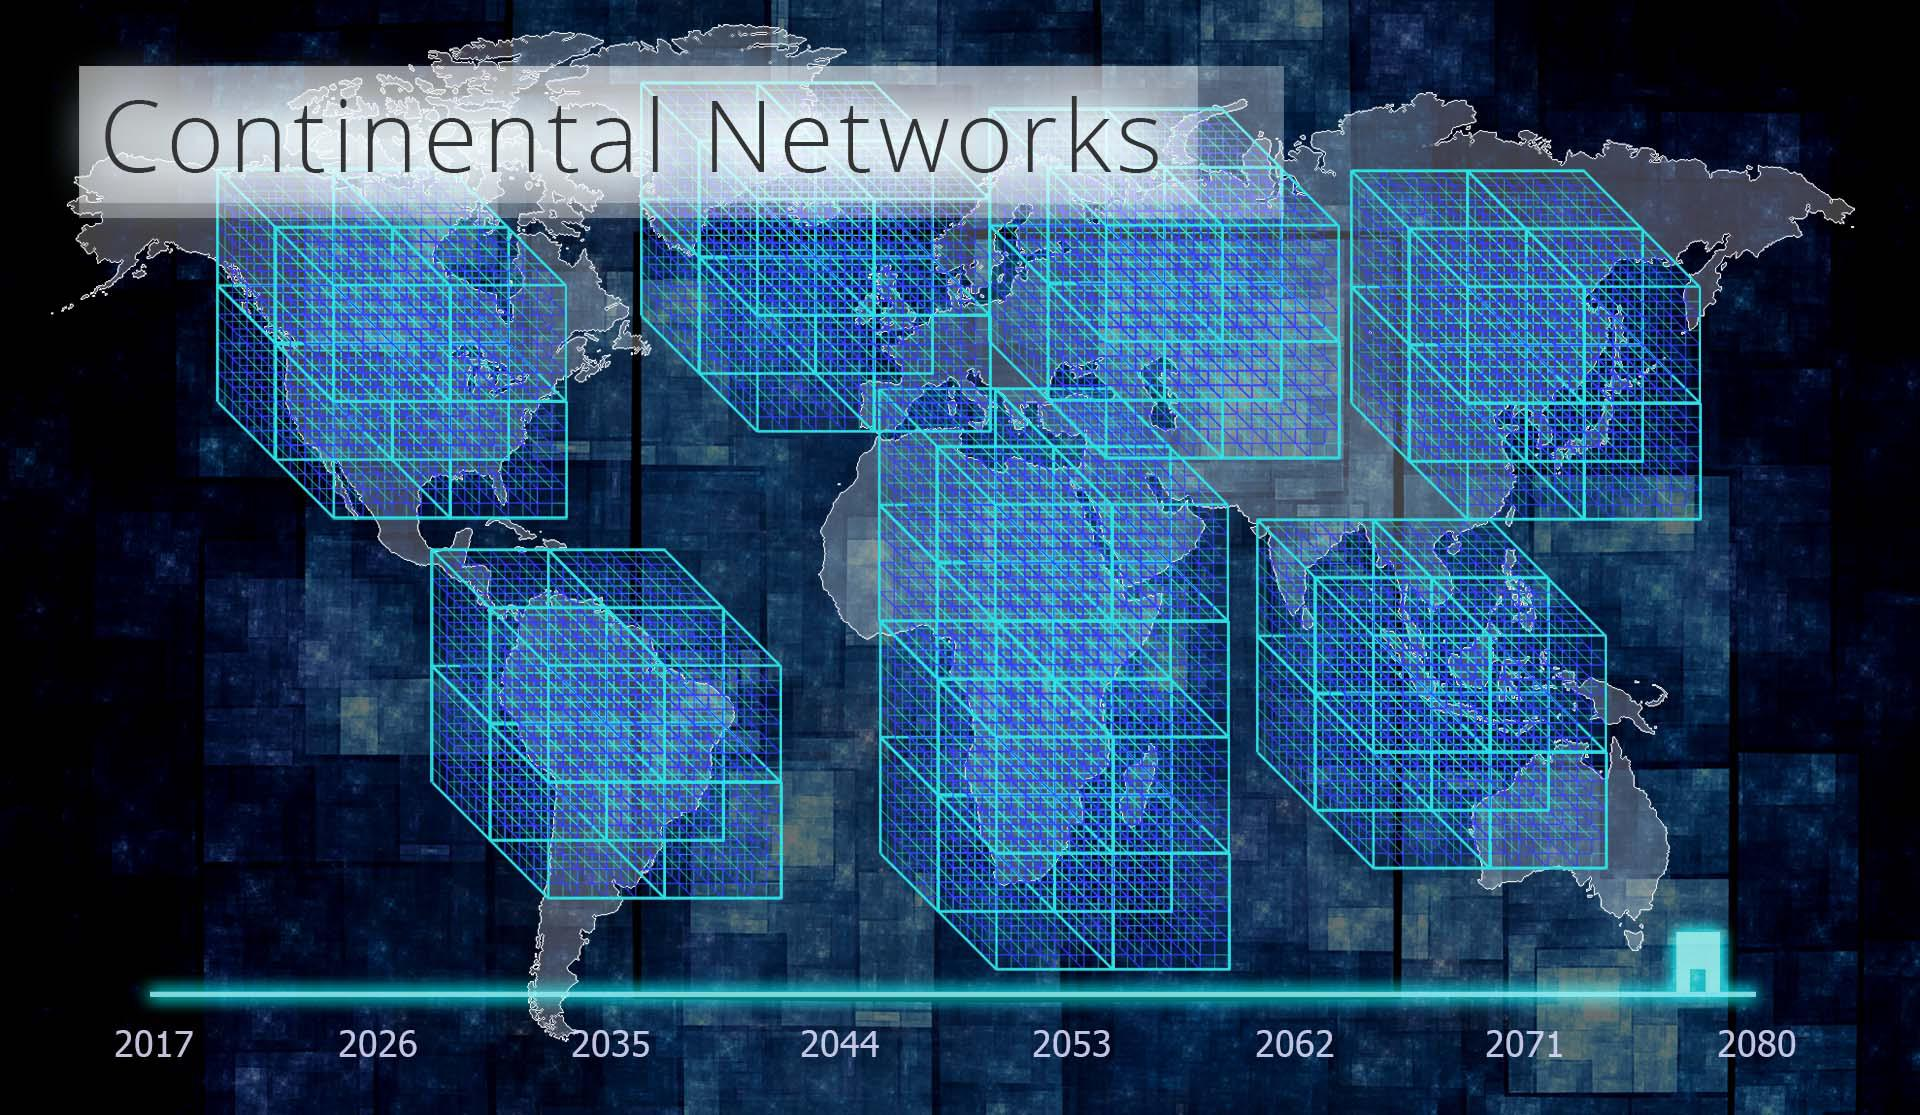 Continental Networks